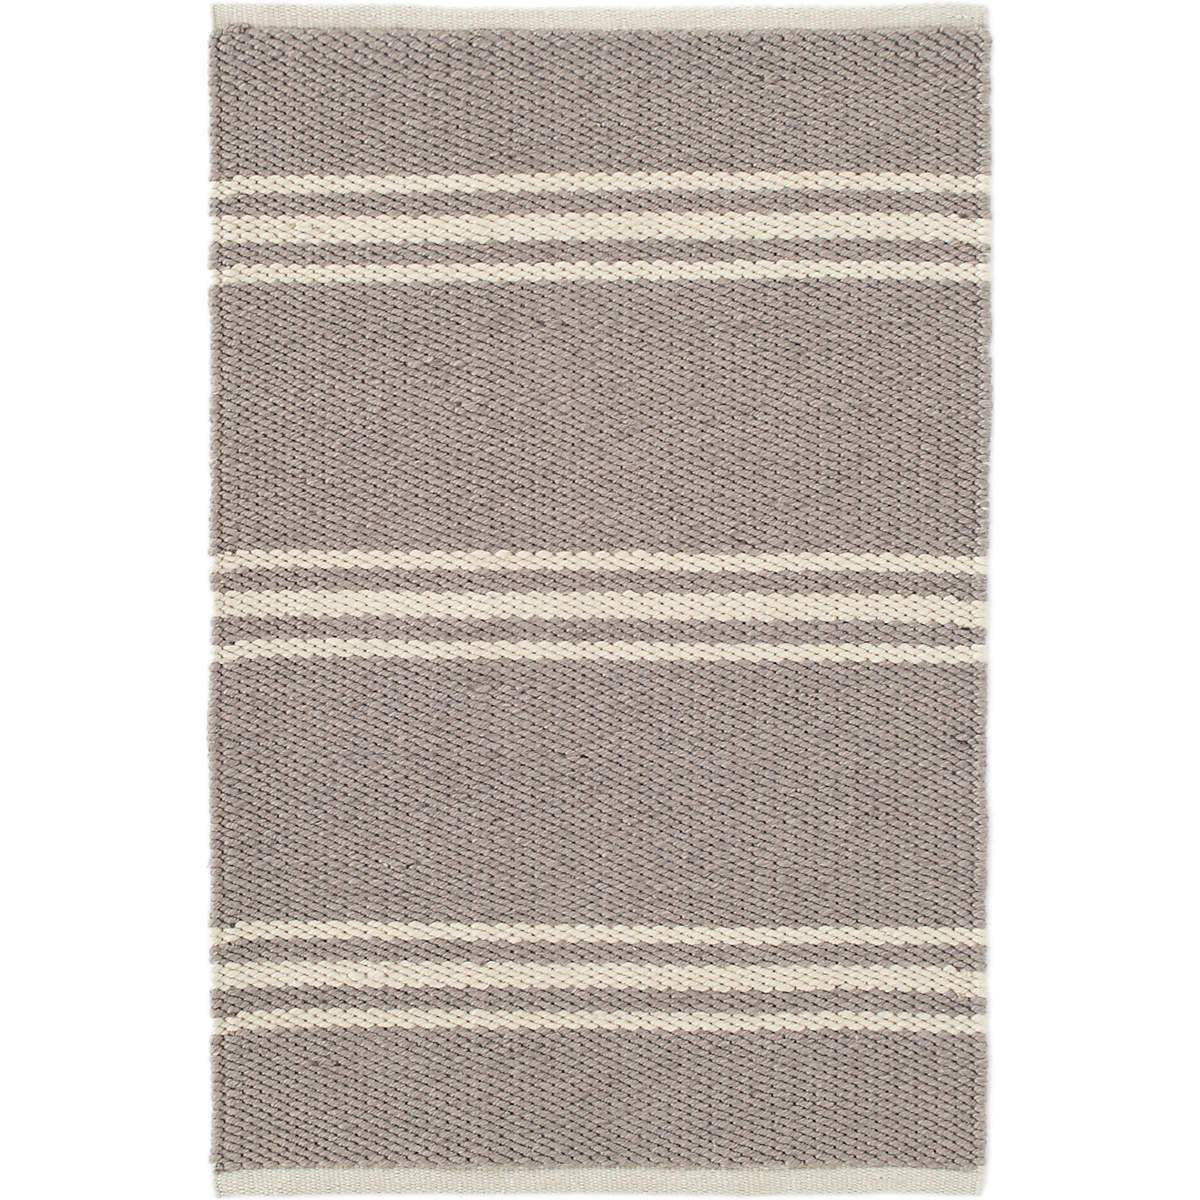 Dash & Albert Lexington Indoor/Outdoor Rug-Decor-3' x 5'-Grey/Ivory-A Cottage in the City